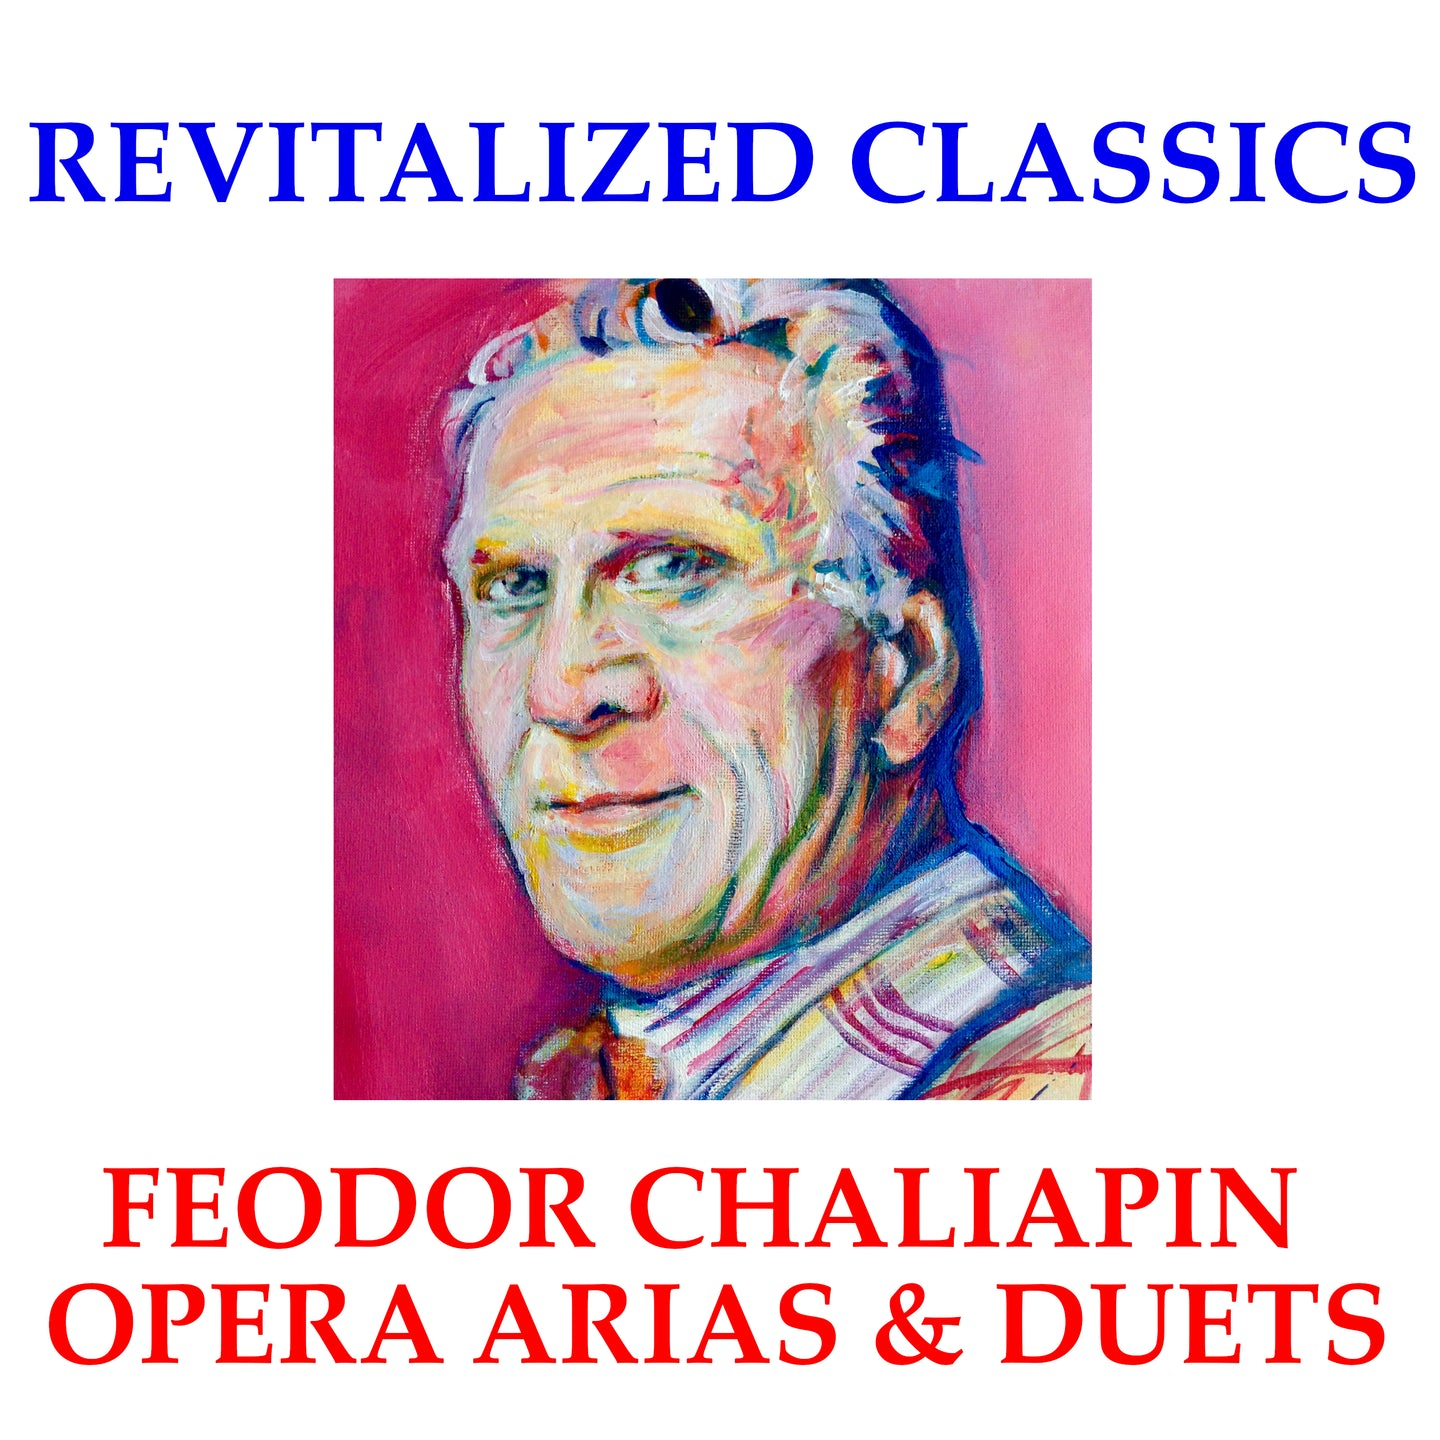 Revitalized Classics: Feodor Chaliapin Acoustic Recordings - Opera Arias & Duets in Stereo!